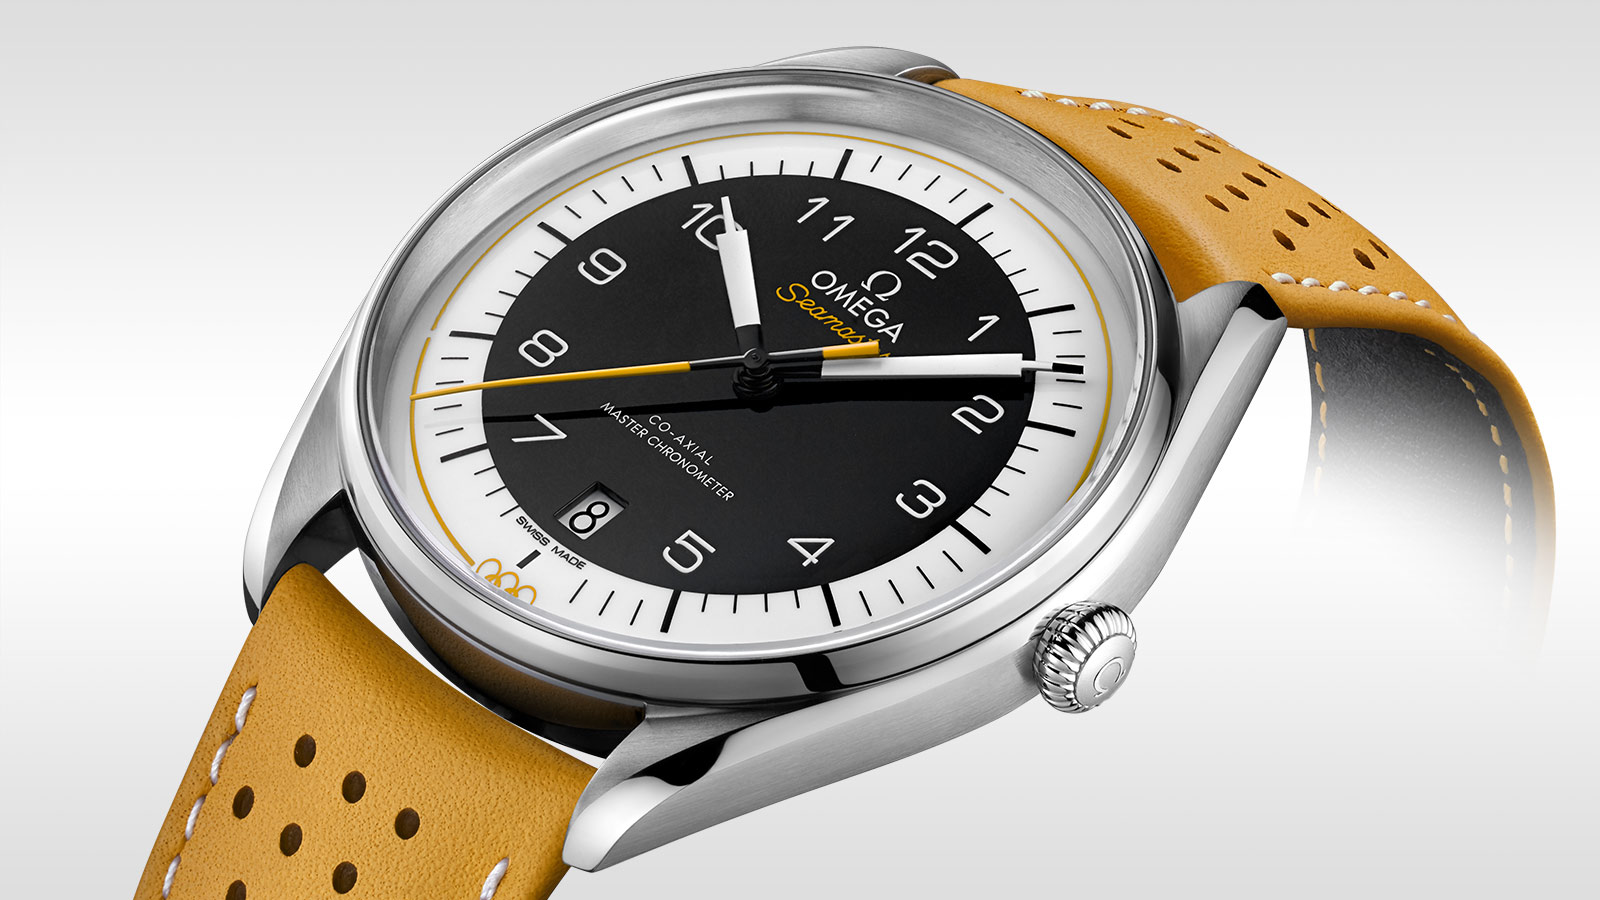 Modelos Especiais Olympic Official Timekeeper Olympic Official Timekeeper Relógio - 522.32.40.20.01.002